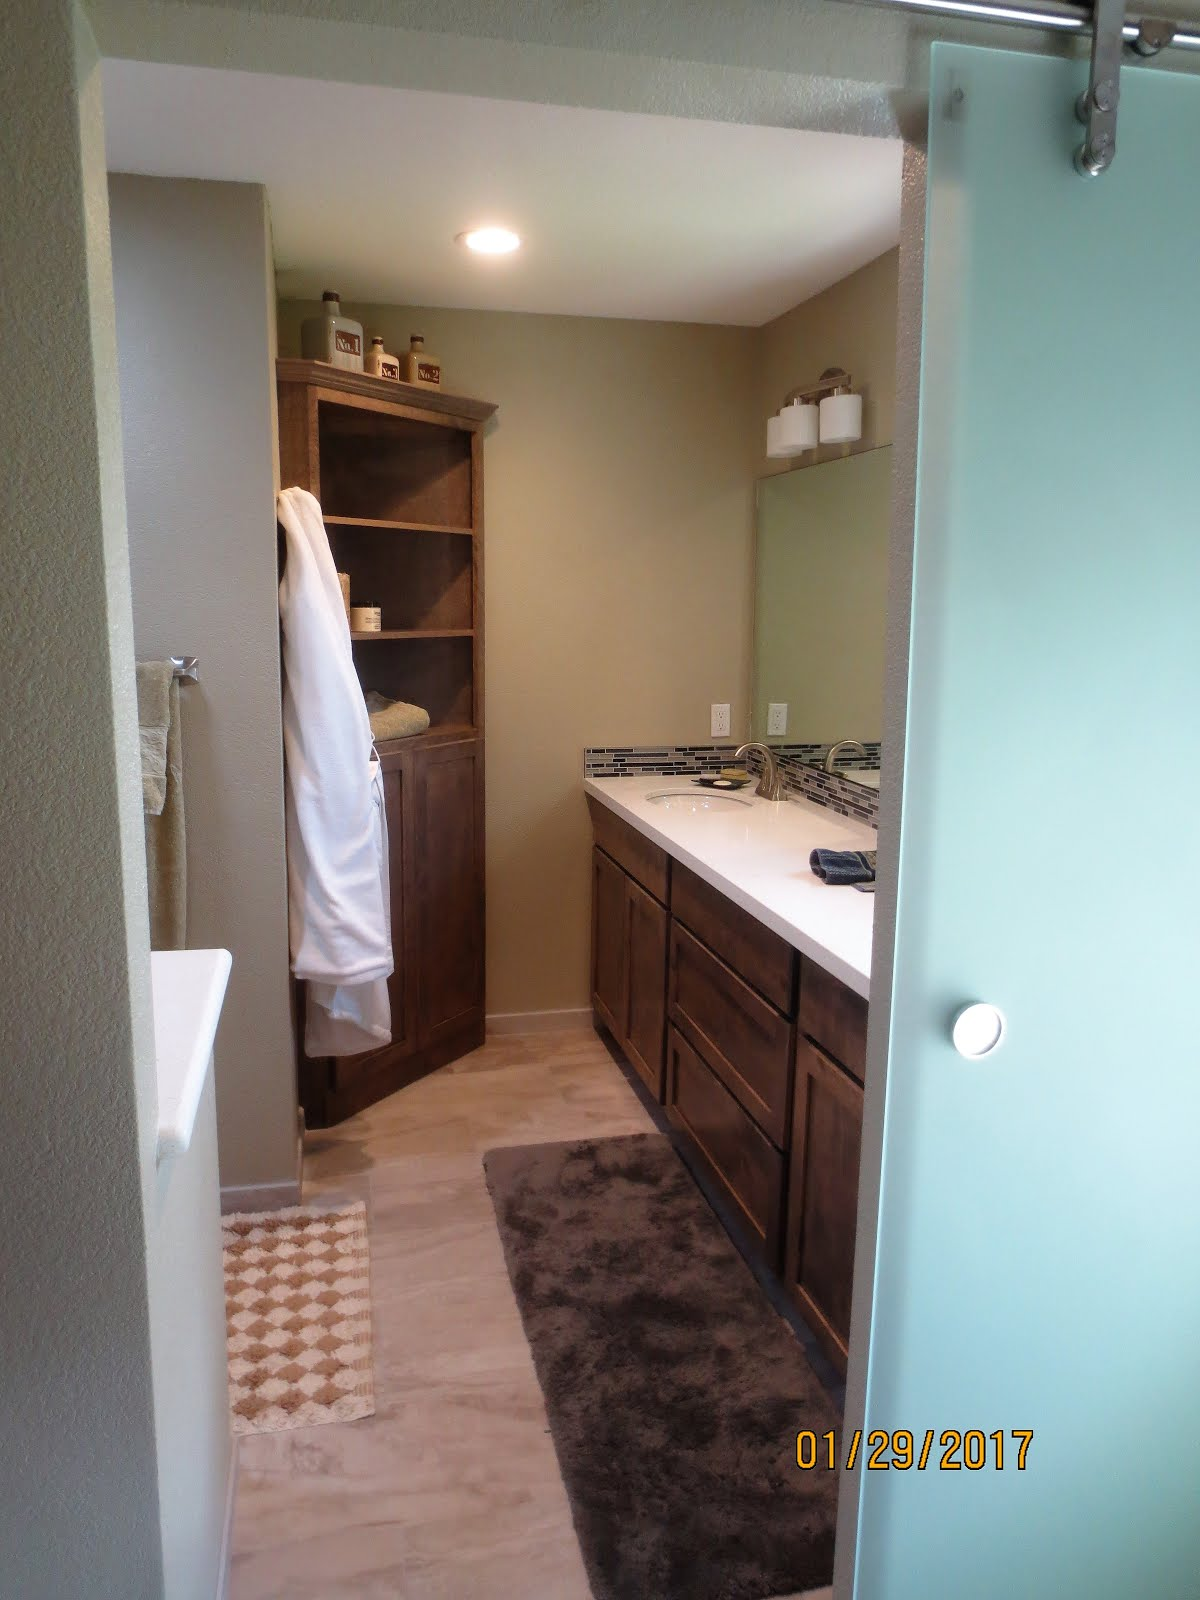 Good That is now a double sink vanity and I had enough room for a corner linen closet These were custom made for me by a local cabinet maker and I can ut say